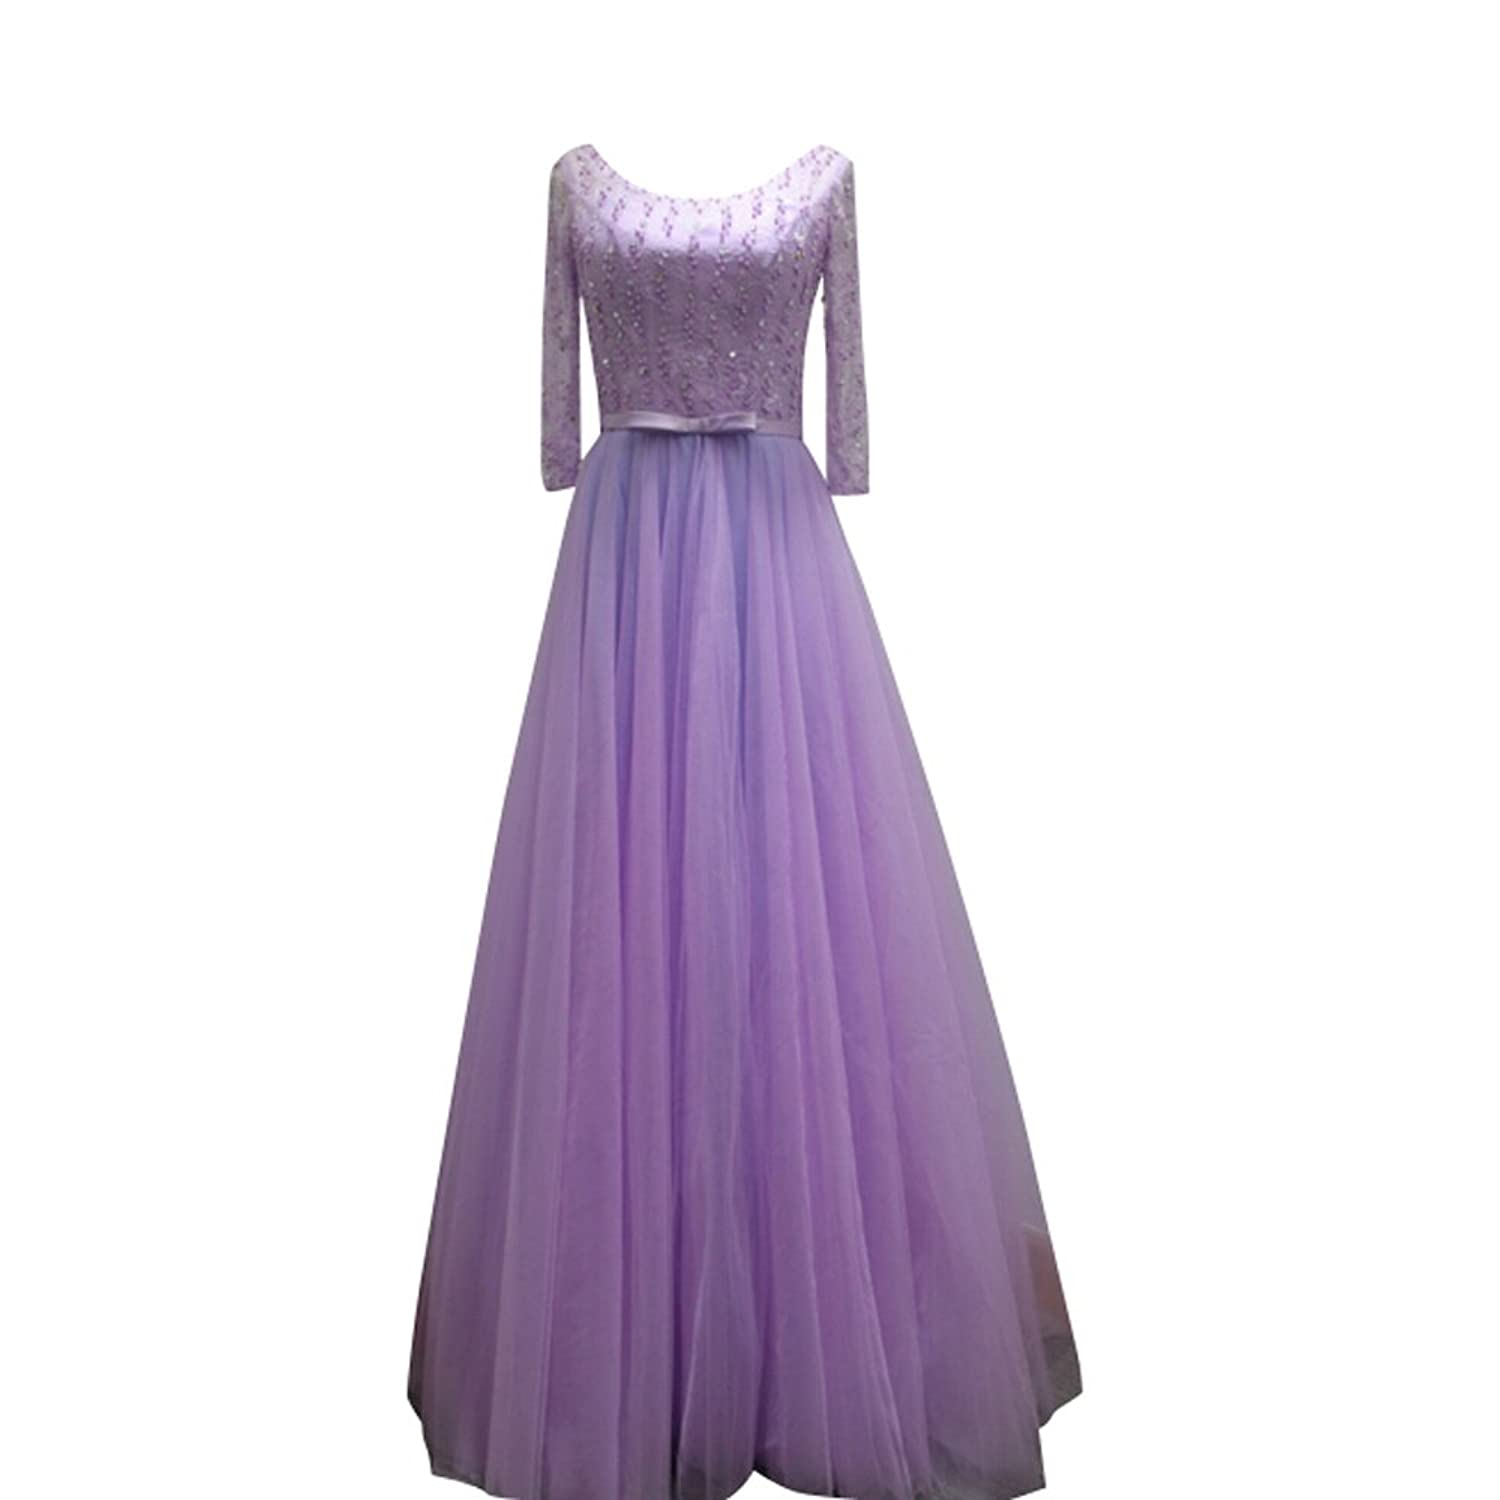 Charm Bridal 2016 Women Beading Evening Party Bridesmaid Dress with Long Sleeve